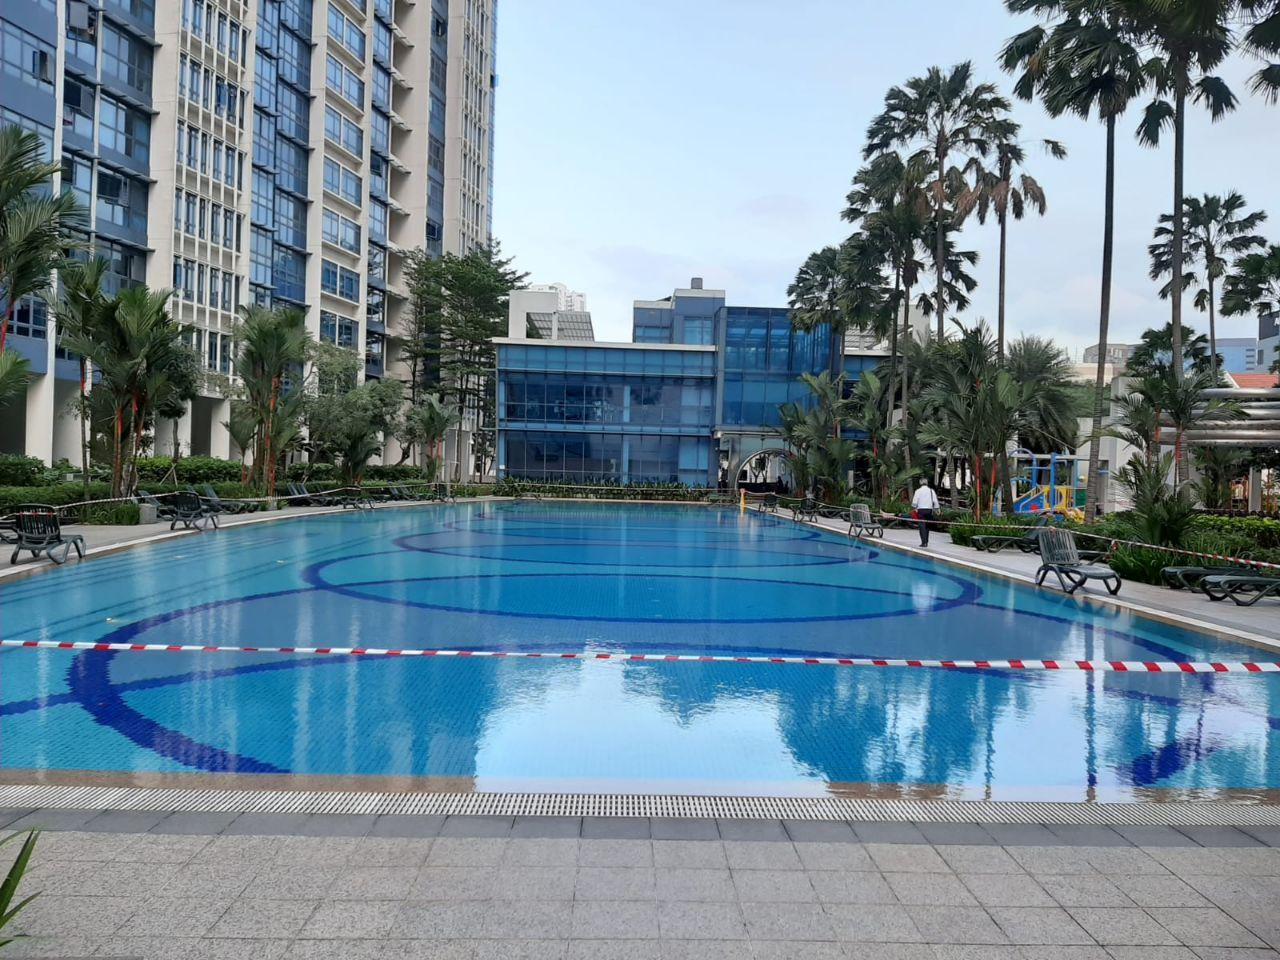 City square residences swimming pool barricaded